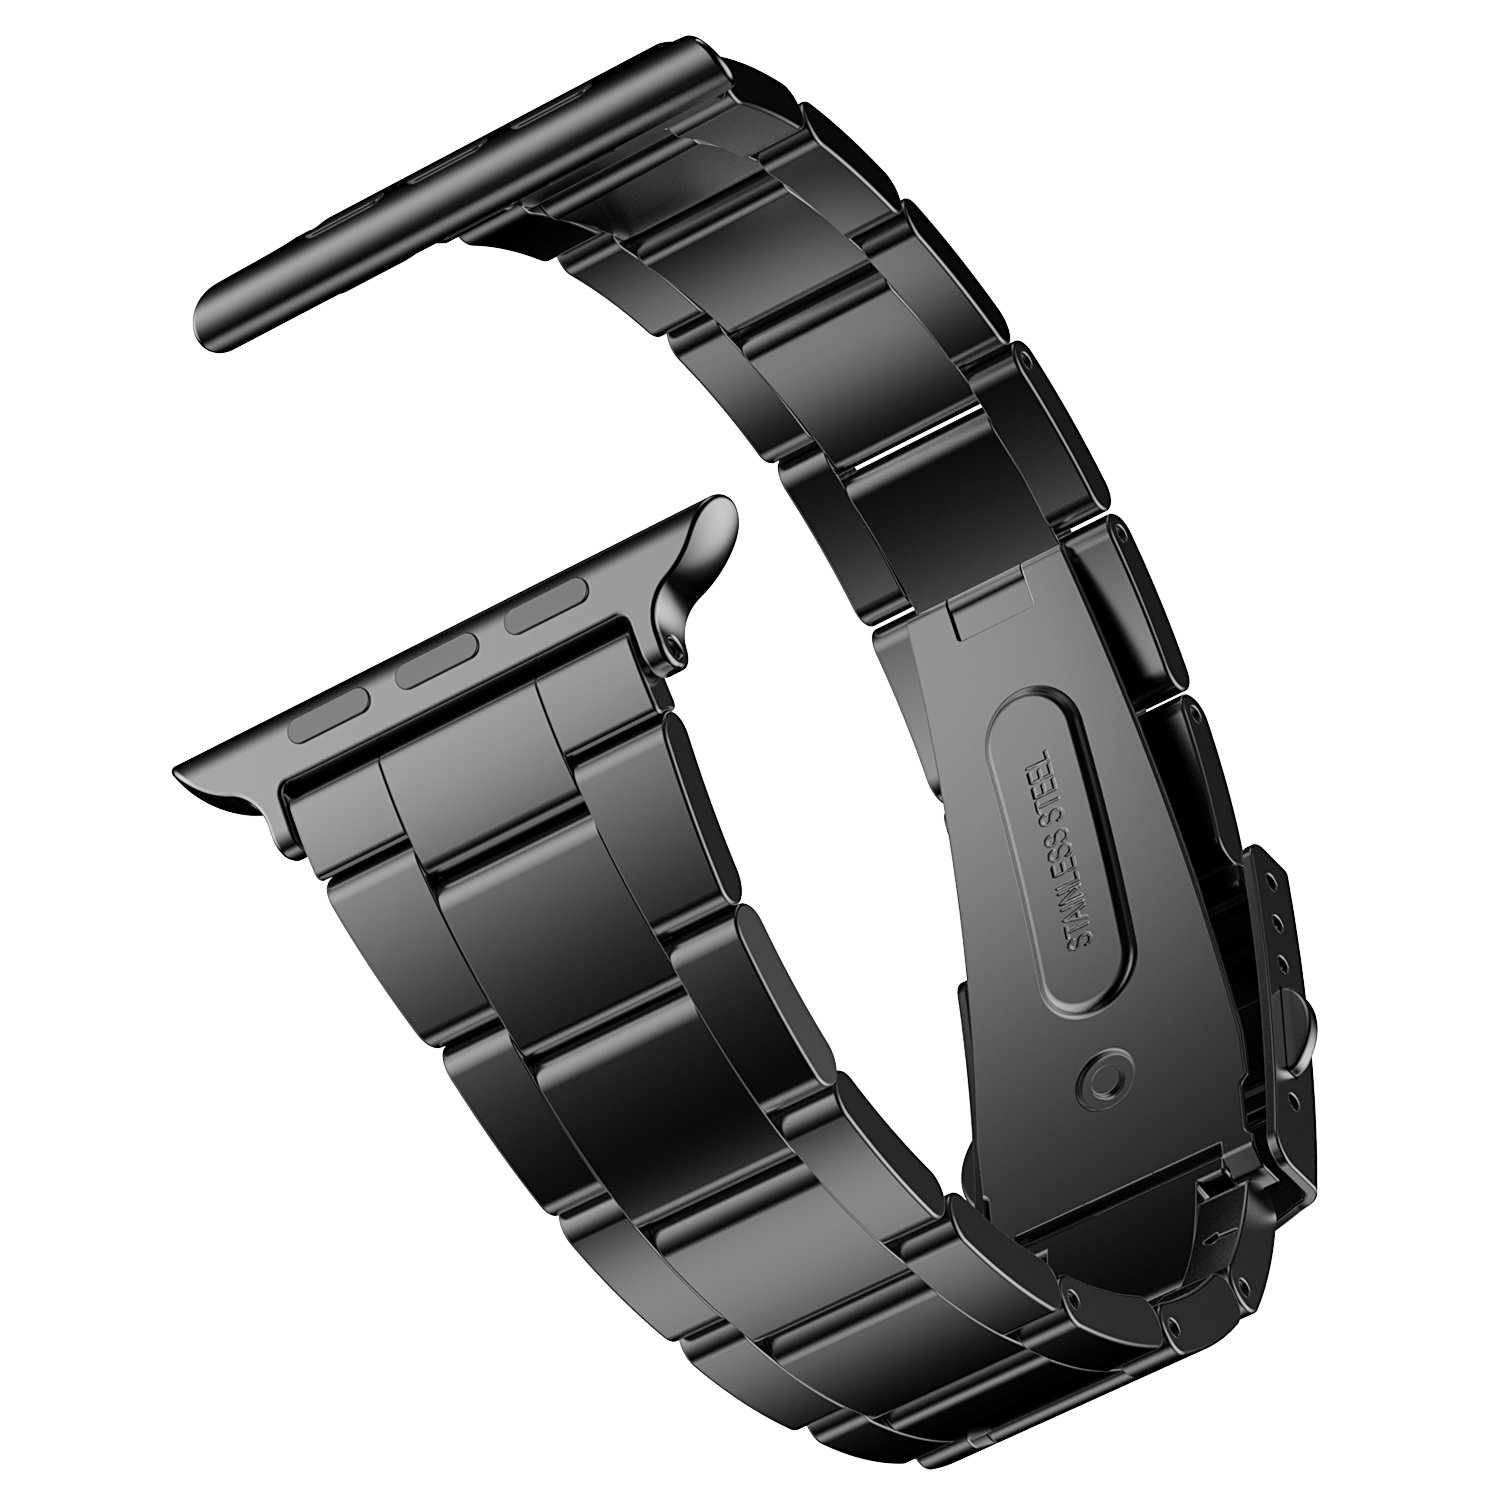 JETech Replacement Band for Apple Watch 42mm and 44mm Series 1 2 3 4, Stainless Steel, Black by JETech